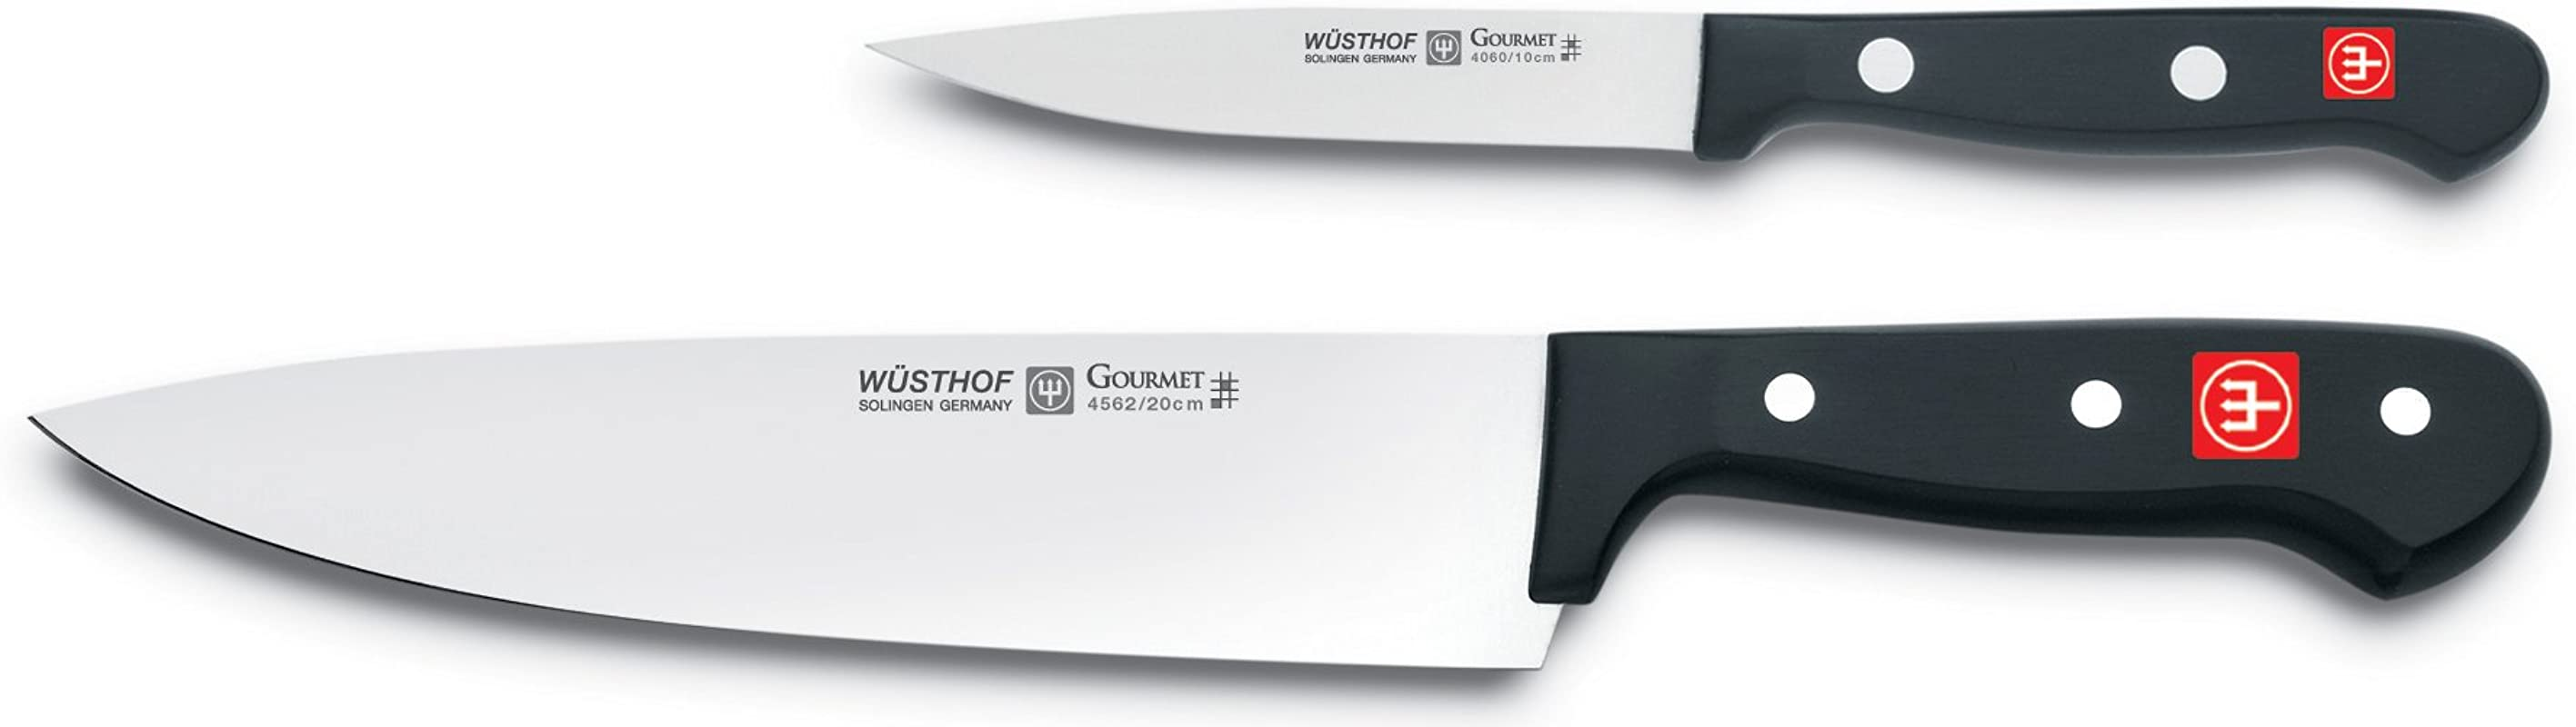 W STHOF Gourmet Two Piece Cook S Knife Set 2 Piece German Knife Set With 8 Chef S Knife 4 Utility Knife Precise Laser Cut High Carbon Stainless Steel Kitchen Cook S Knife Set Model 9654